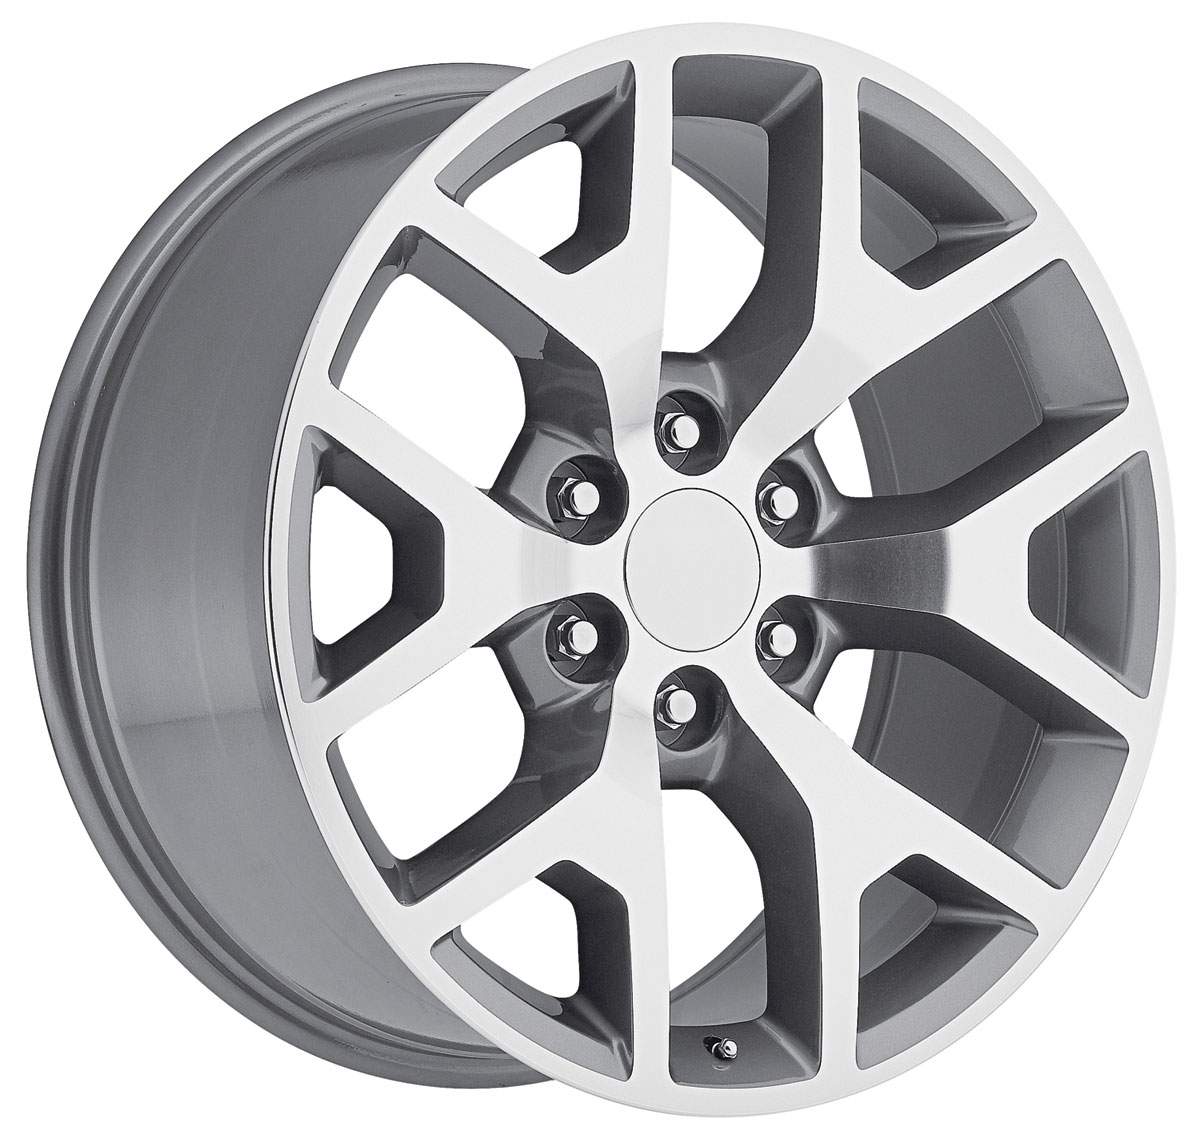 Wheel, Factory Reproduction, Escalade, SRS 44, 24X10 6X5.5 +31 HB 78.1